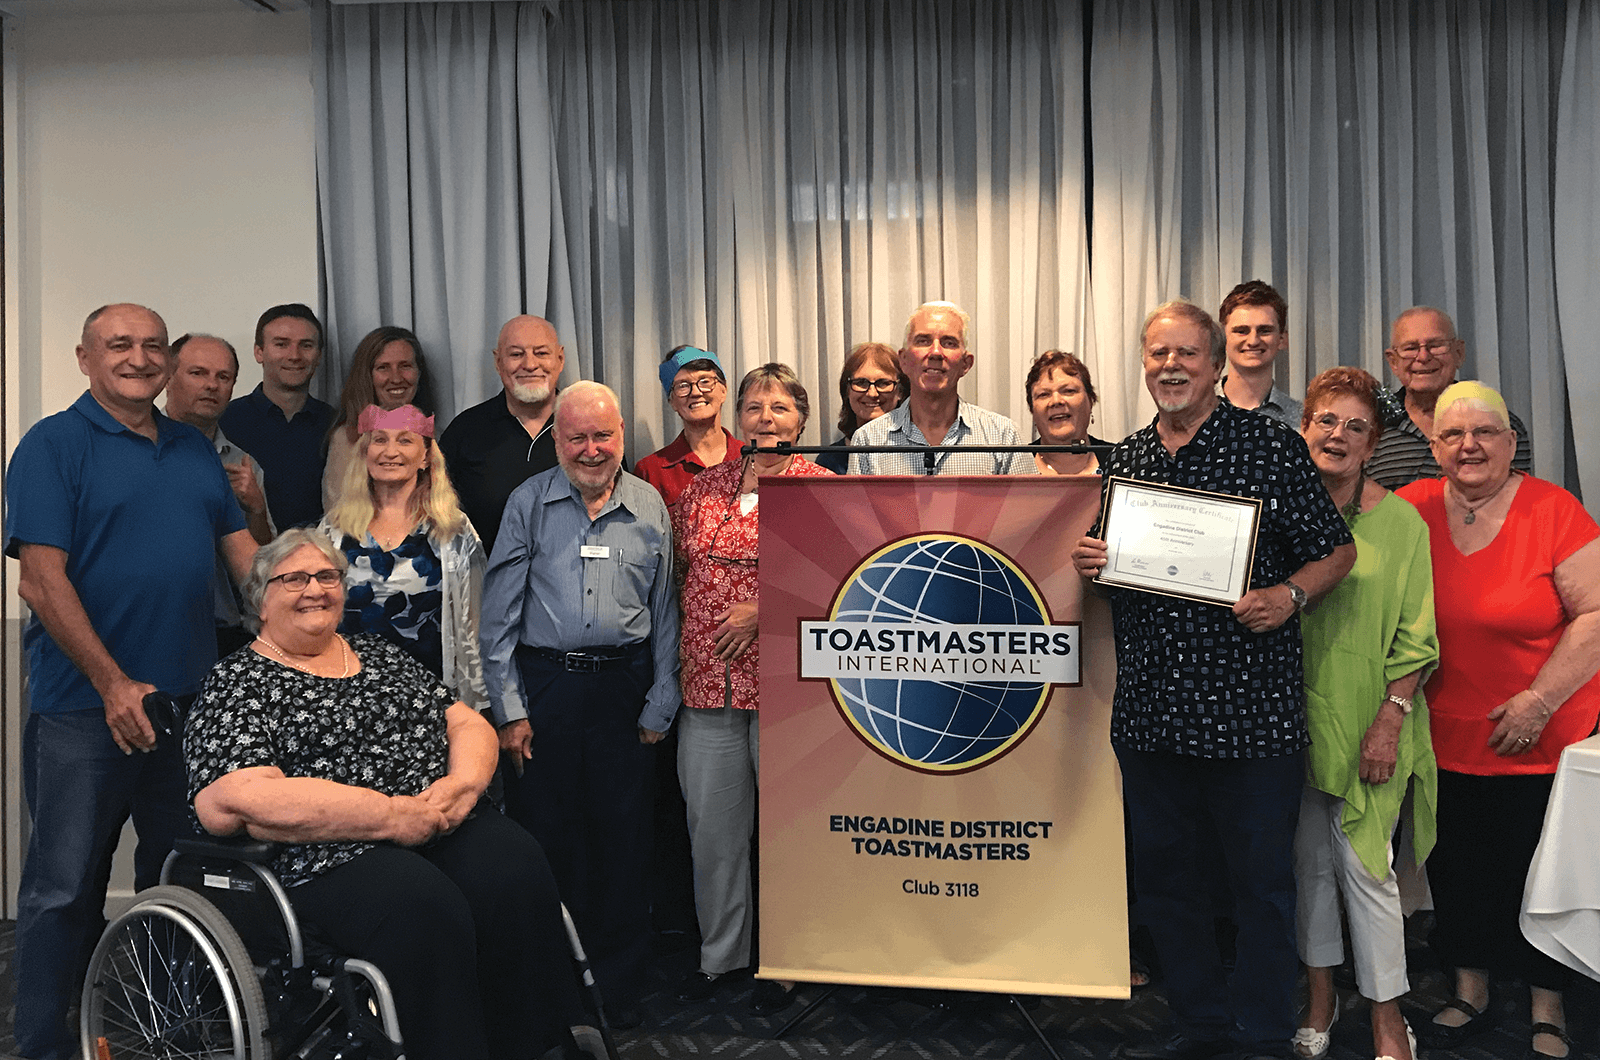 Group of Toastmasters members posing with banner